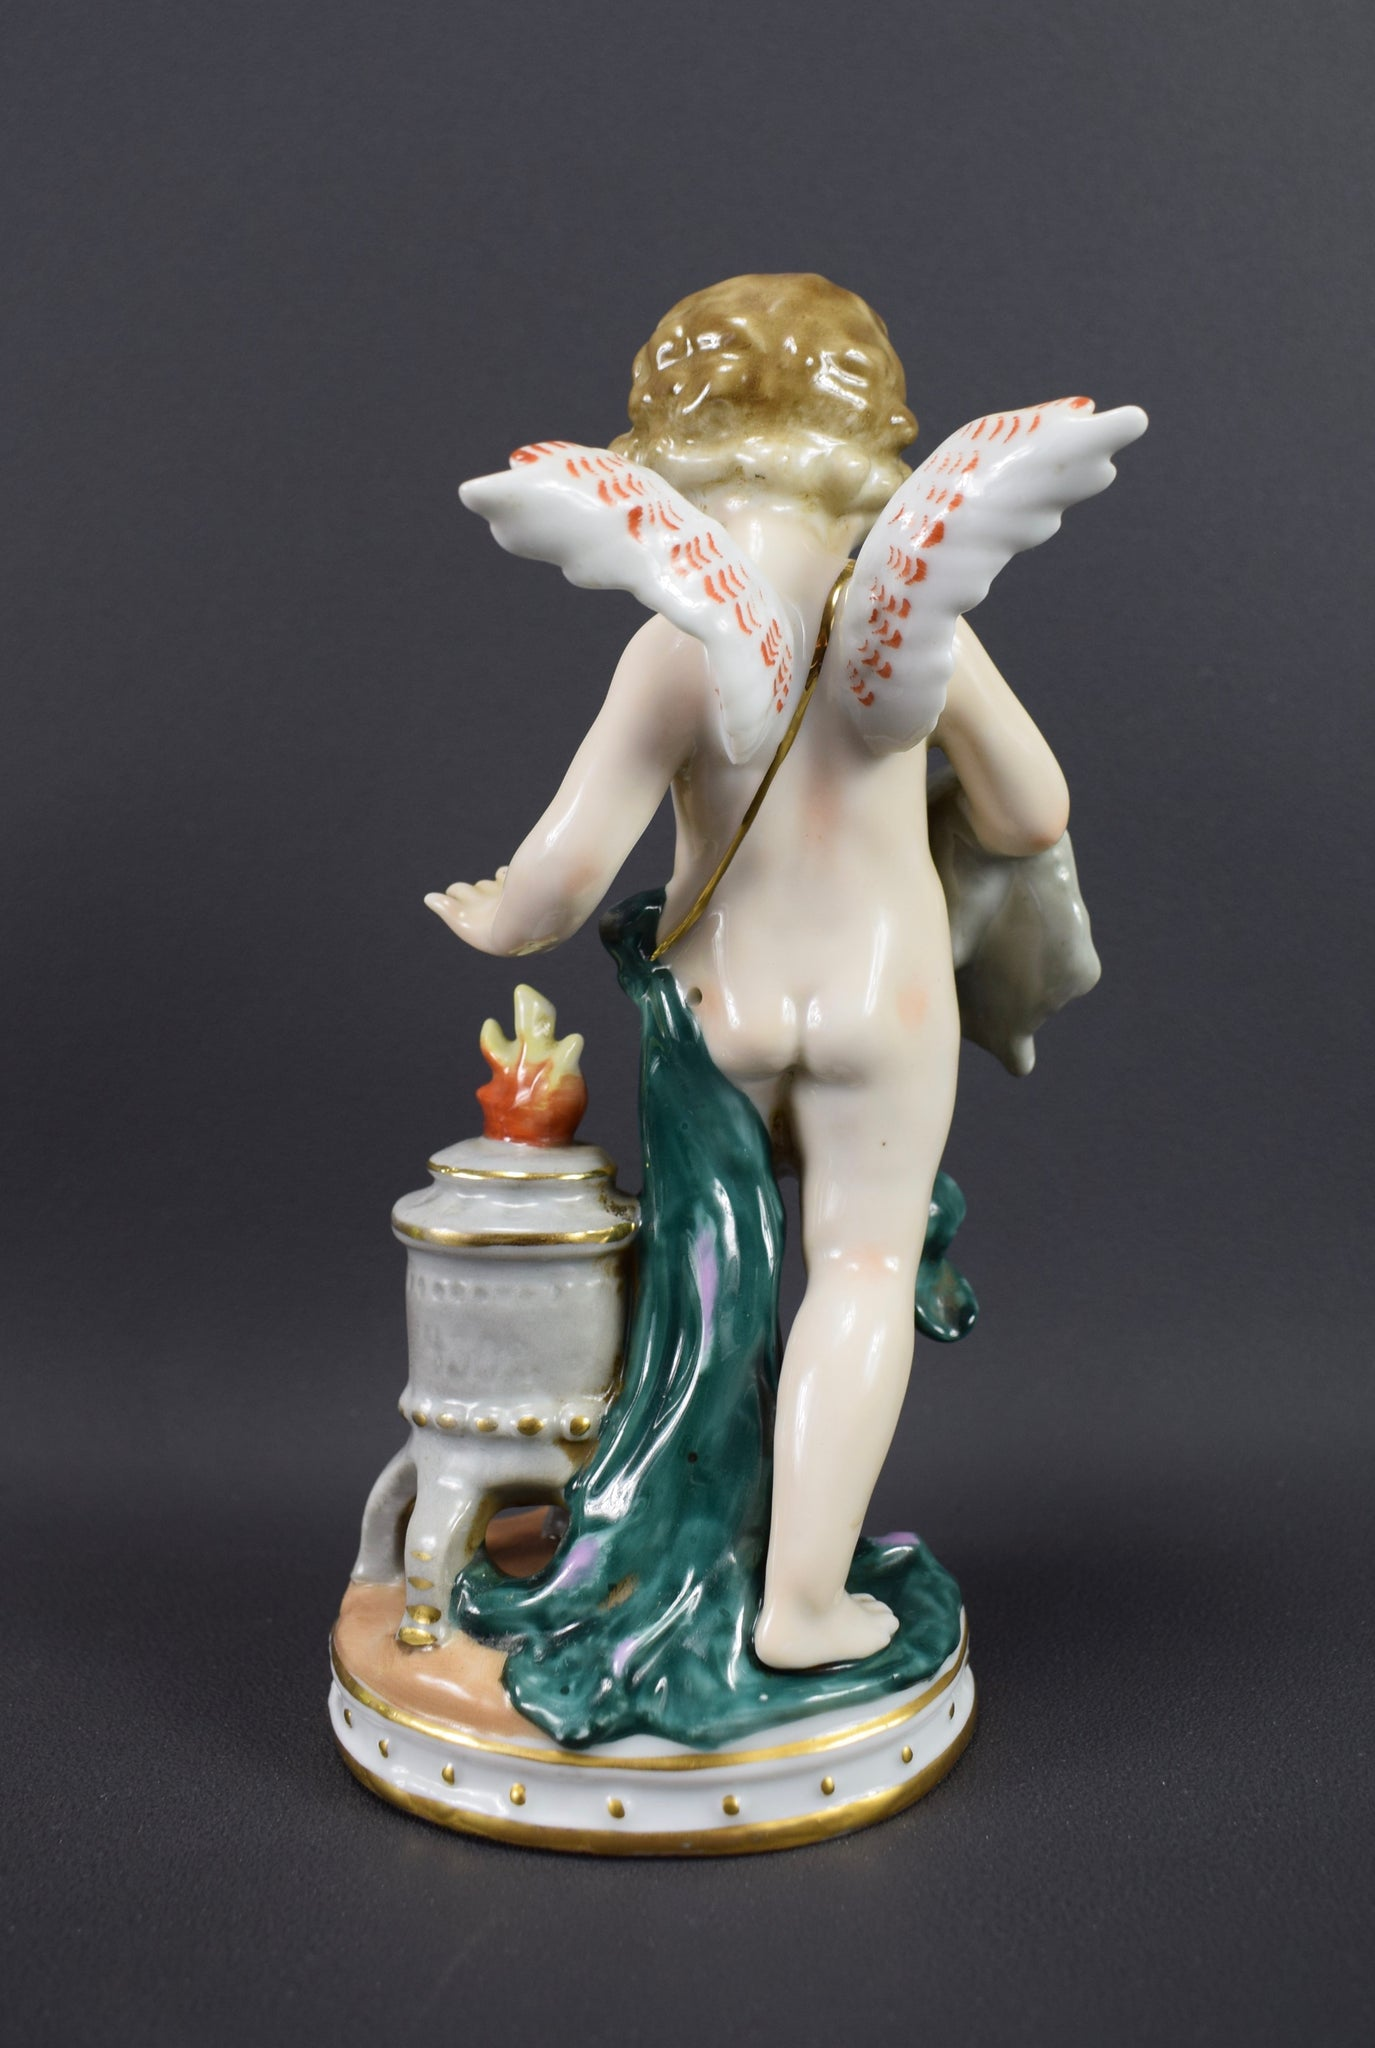 French Porcelain Cherub - Charmantiques